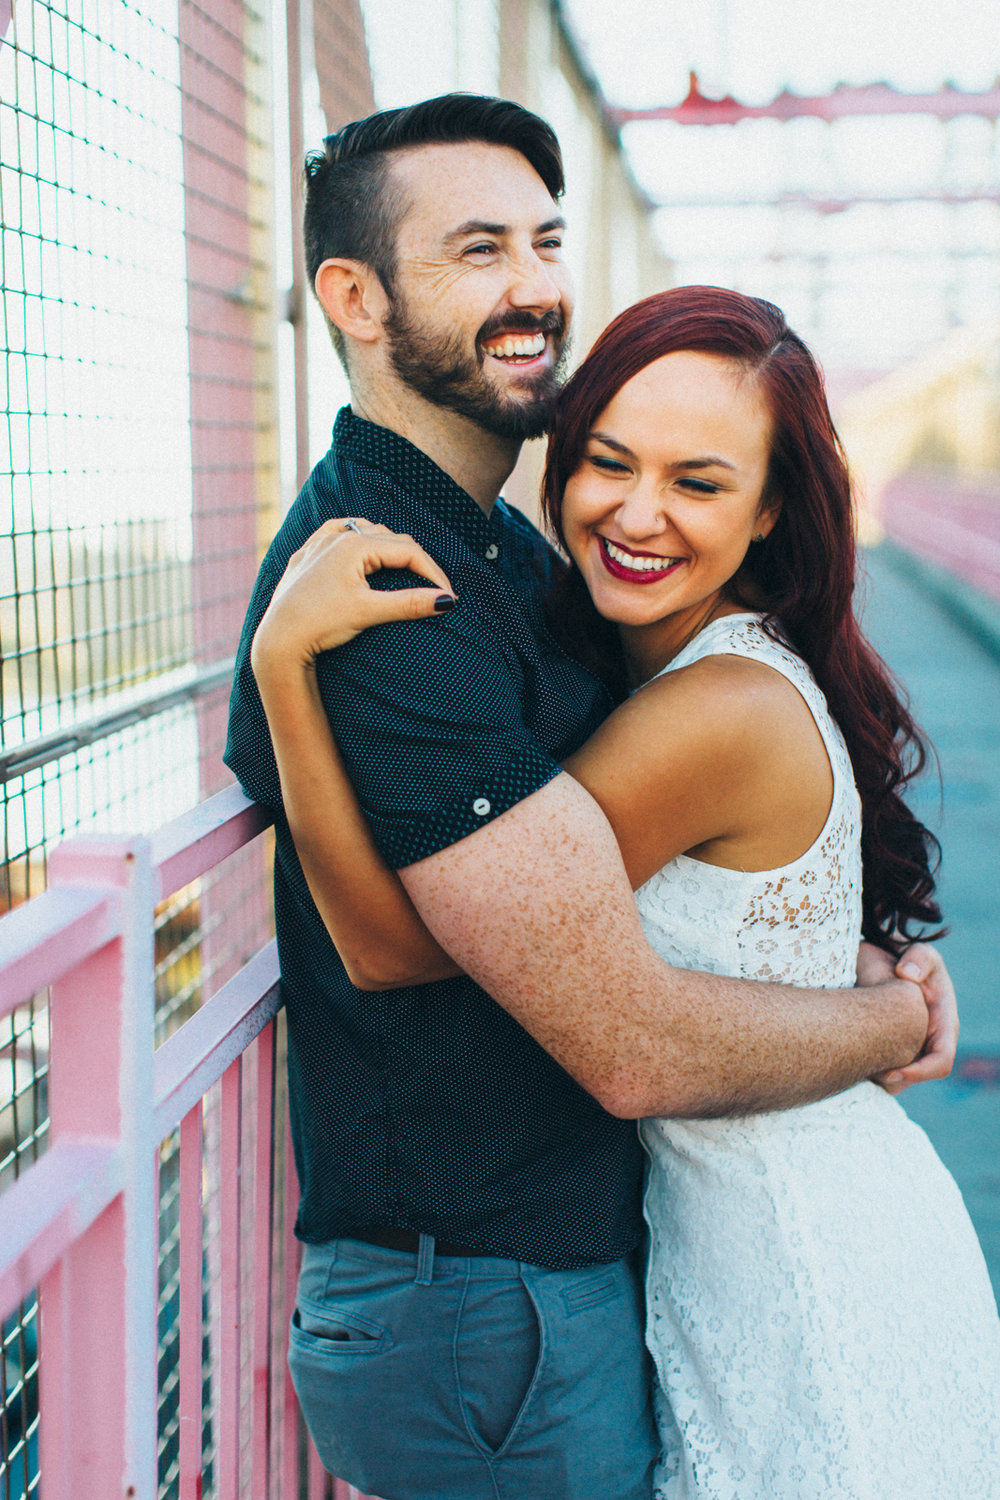 Brooklyn Greenpoint Williamsburg Bridge Engagement New York Wedding Photographer Boris Zaretsky _B2C9745.jpg